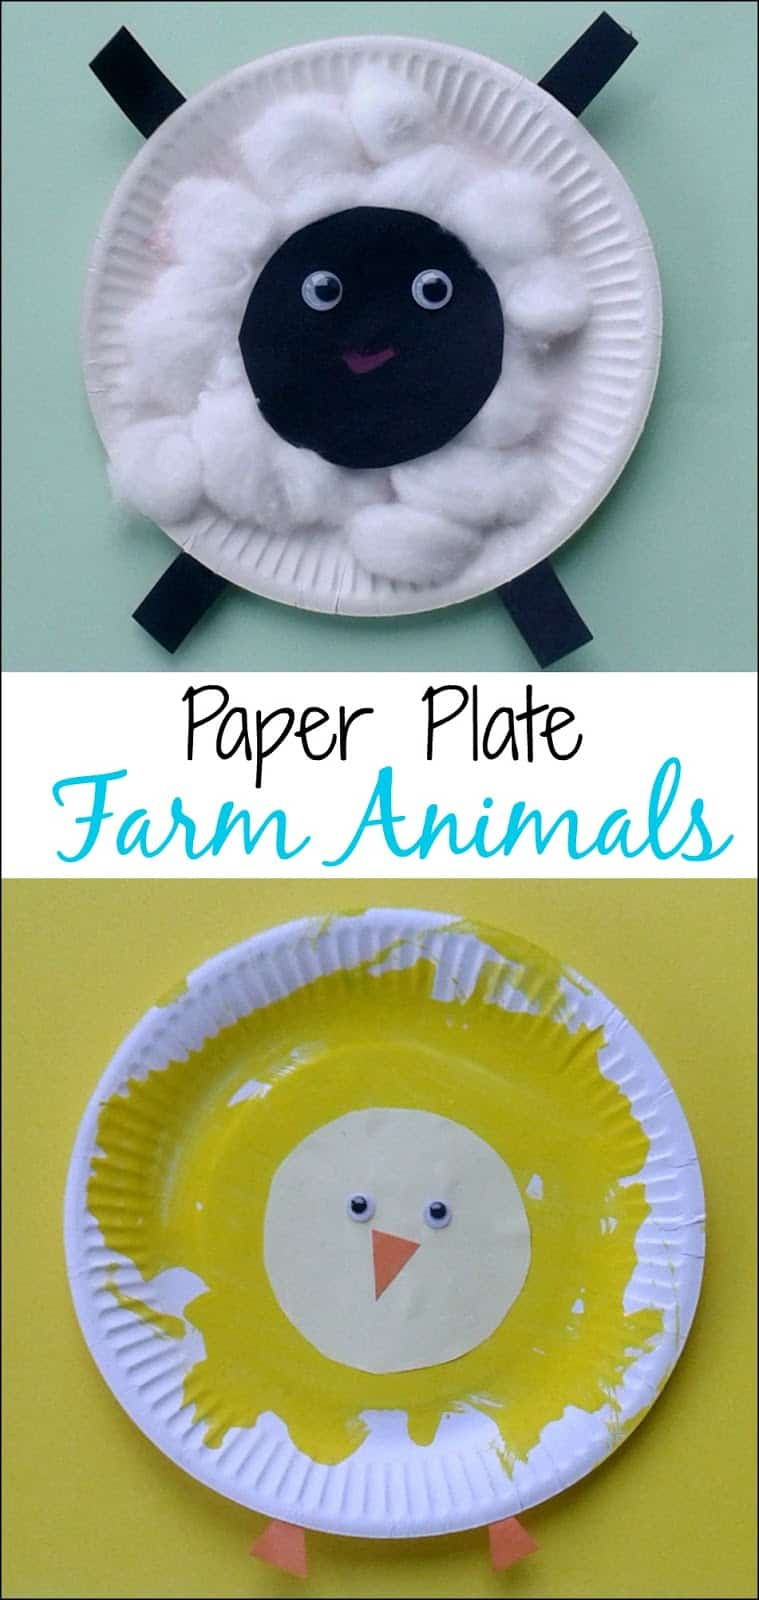 & Crafts for Toddlers - Paper Plate Baby Farm Animals - Mess for Less